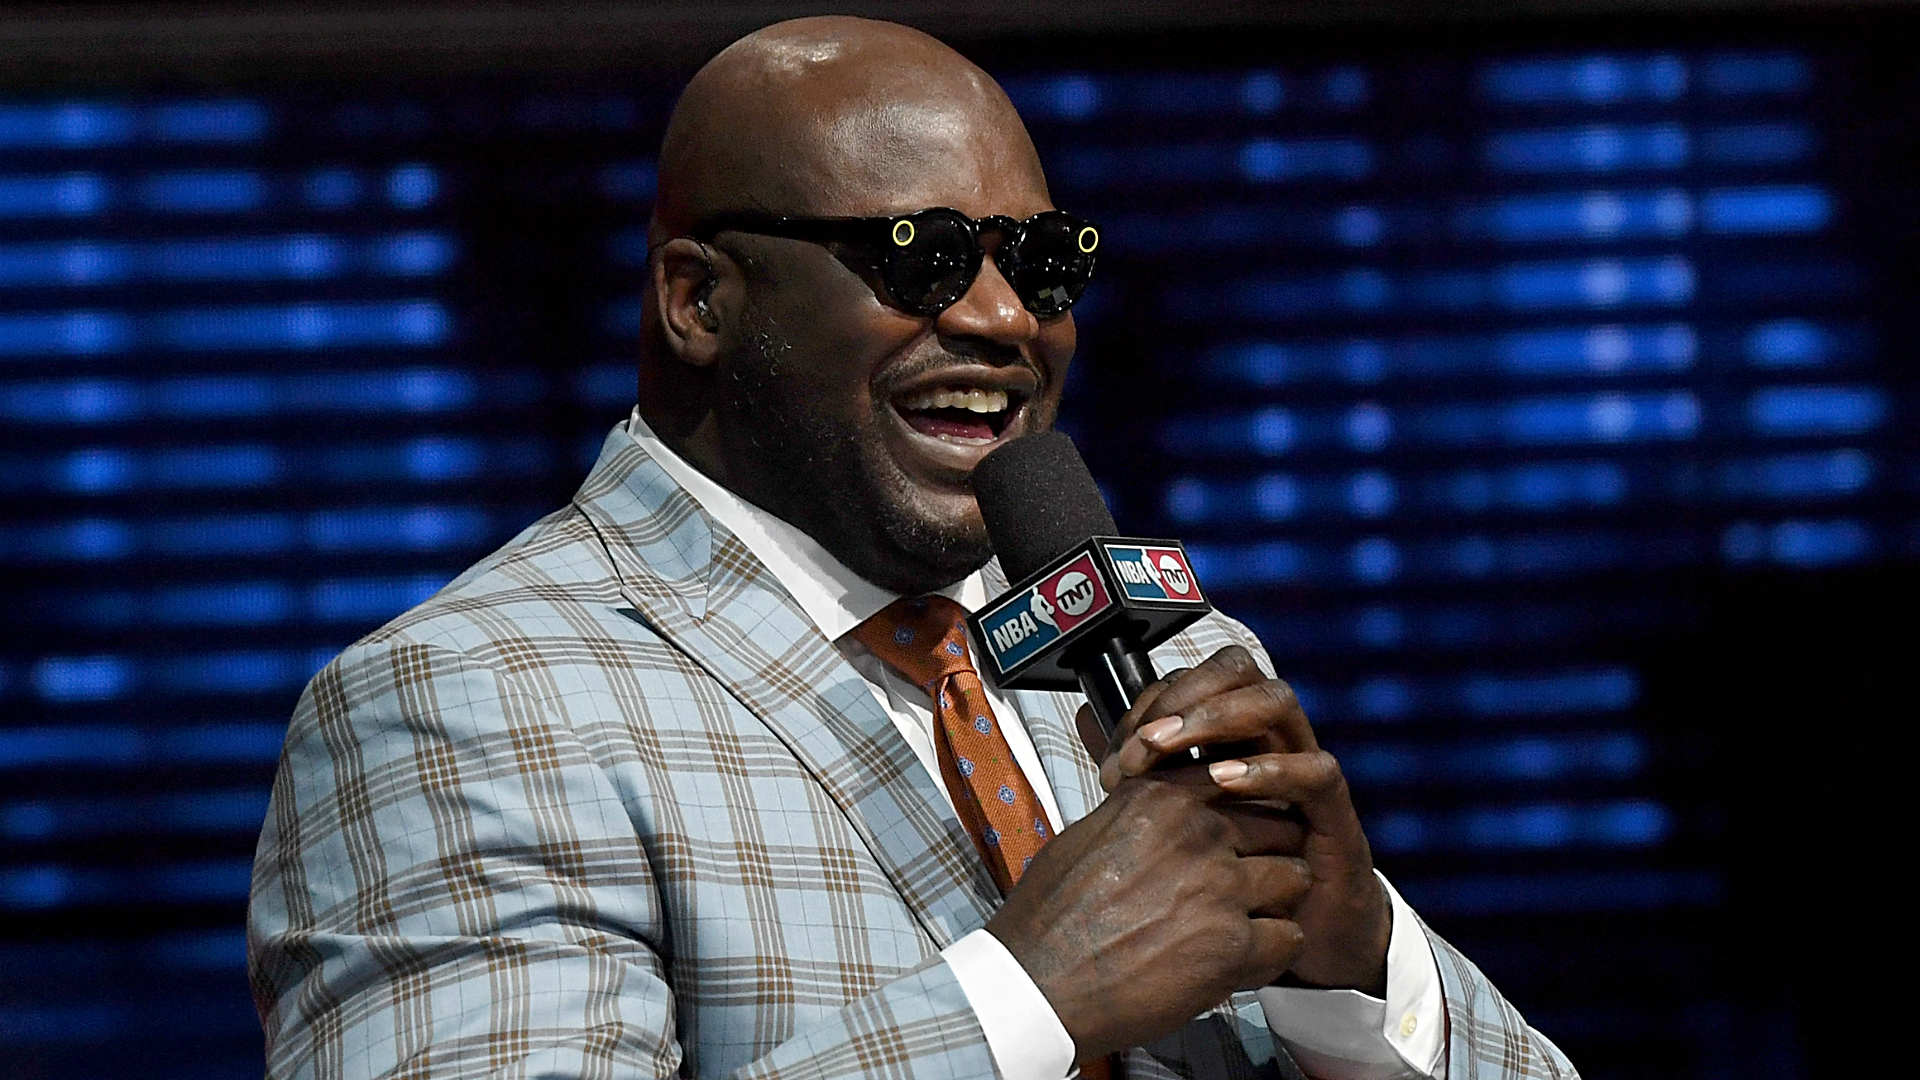 Shaquille O'Neal doesn't care enough about his 'NBA on TNT' job to learn the first names of players